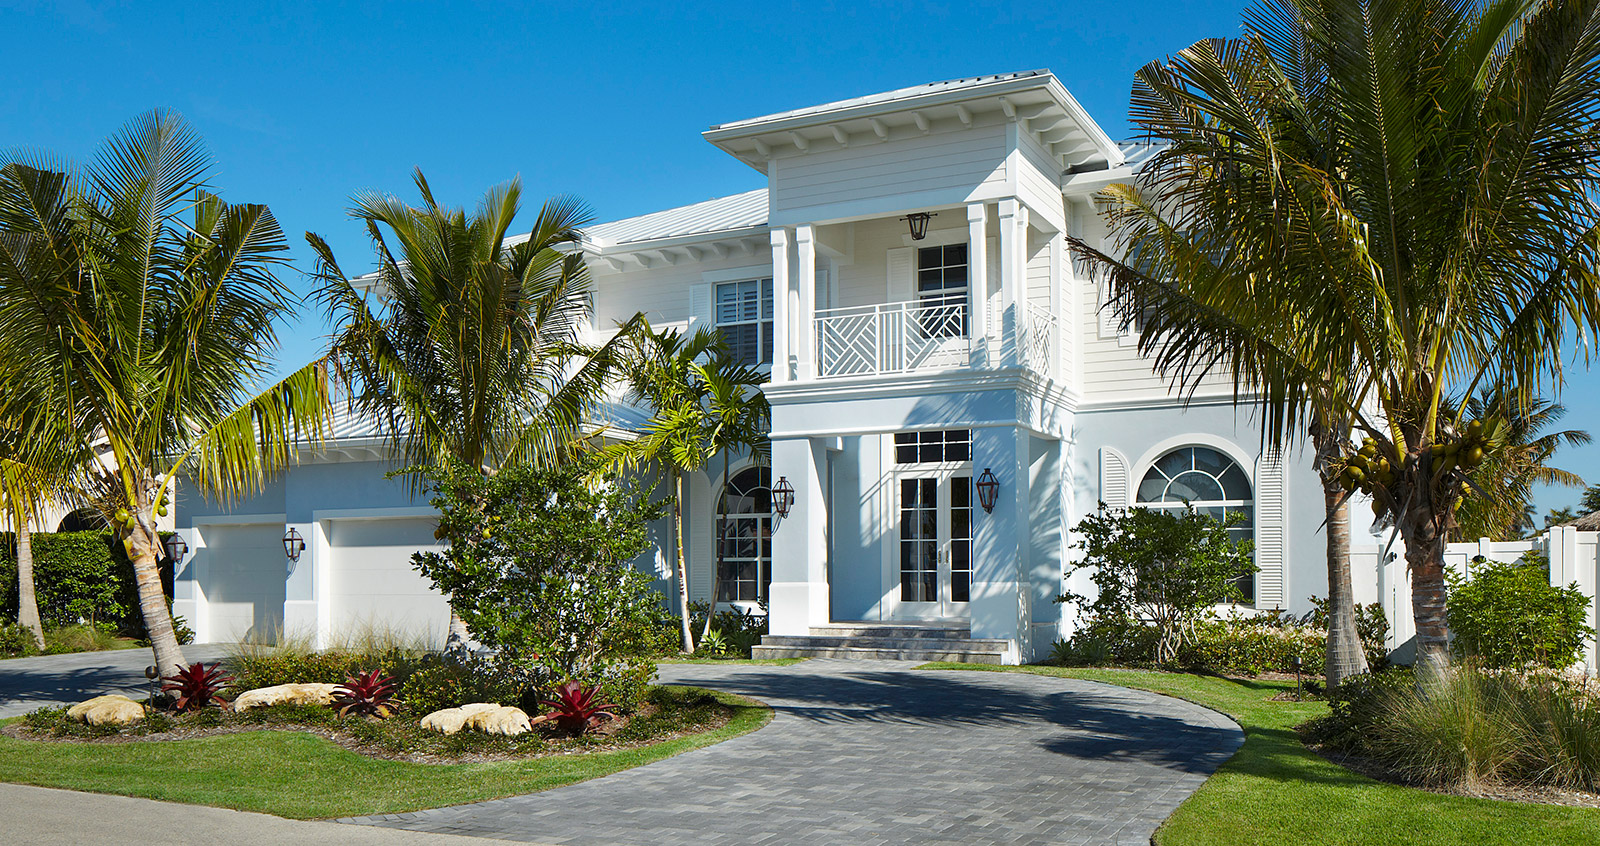 British West Indies Style on Key West Cottage House Plans